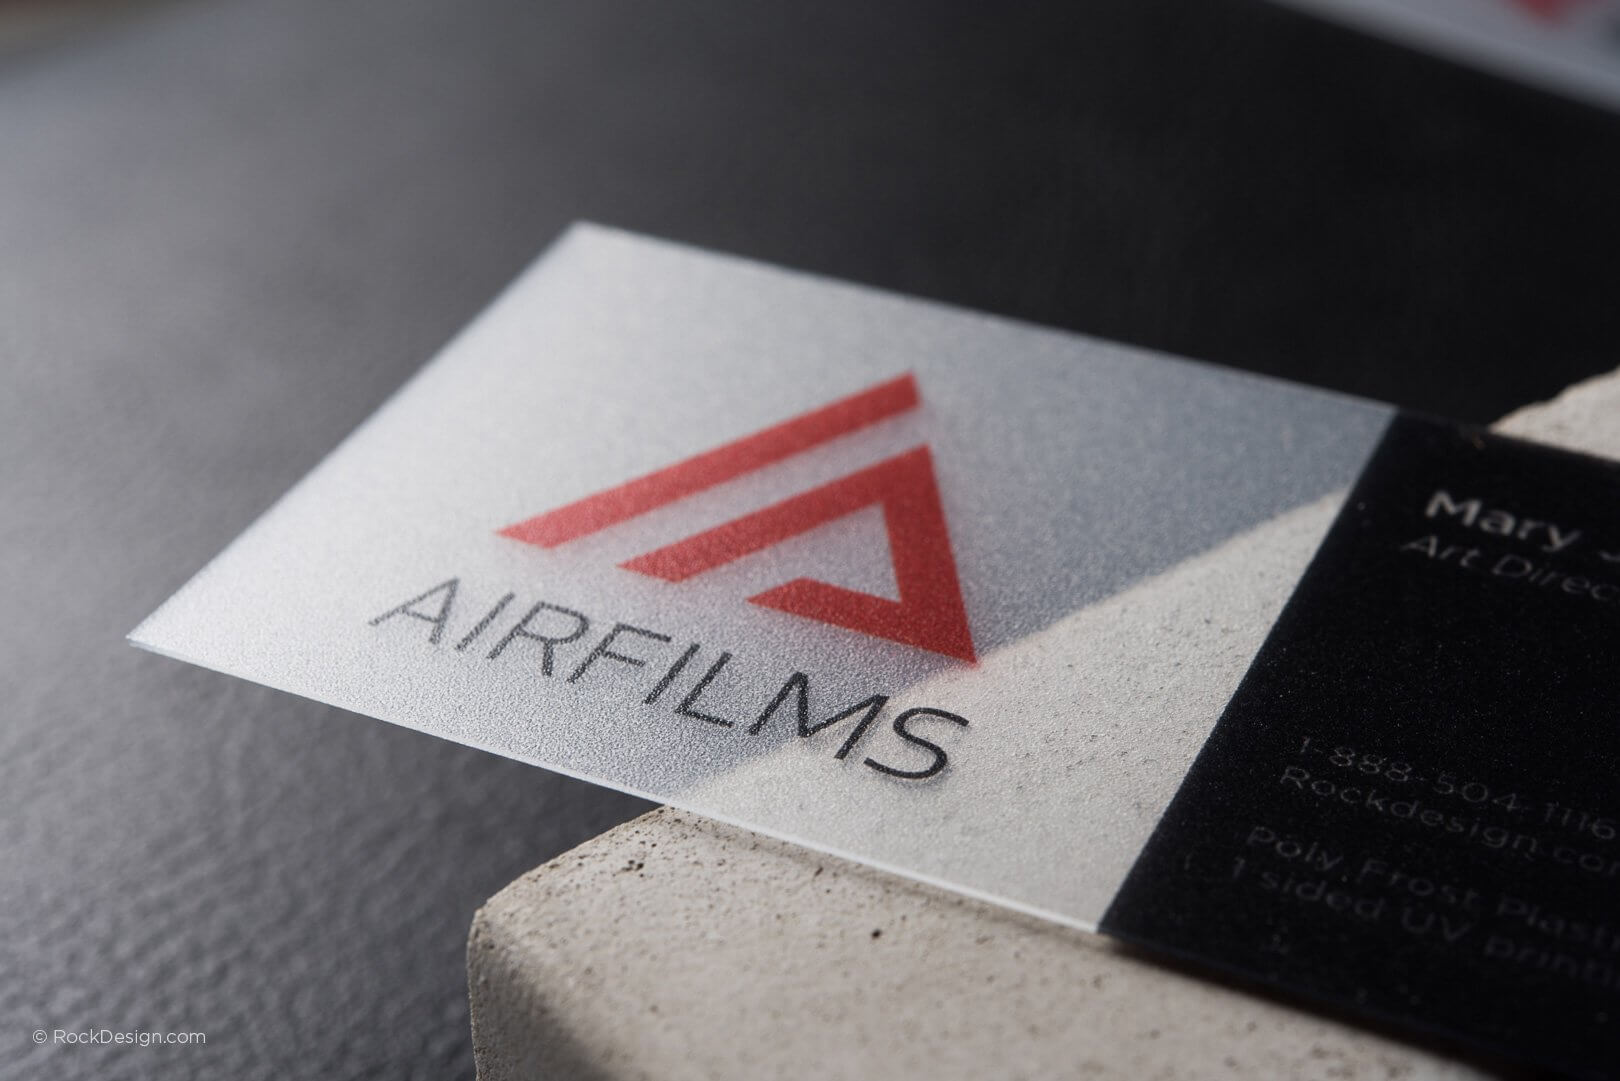 Free Frosted Business Card Templates | Rockdesign within Transparent Business Cards Template